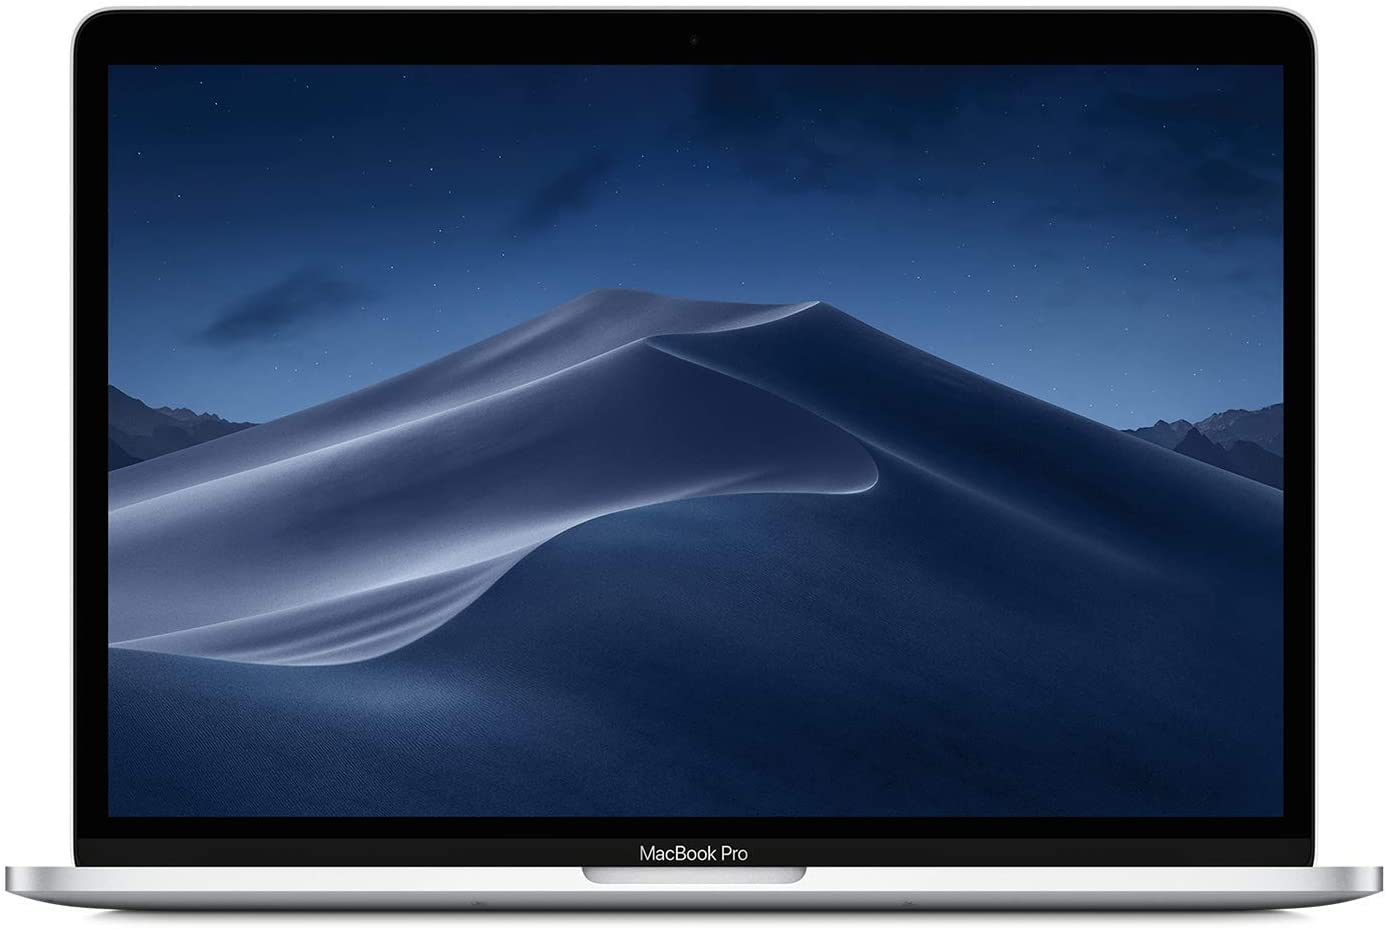 Apple 13.3 inches MacBook Pro Touch Bar, 2.4 GHz Intel Core i5 Quad-Core, 8GB RAM, 256GB SSD - Silver (Renewed)